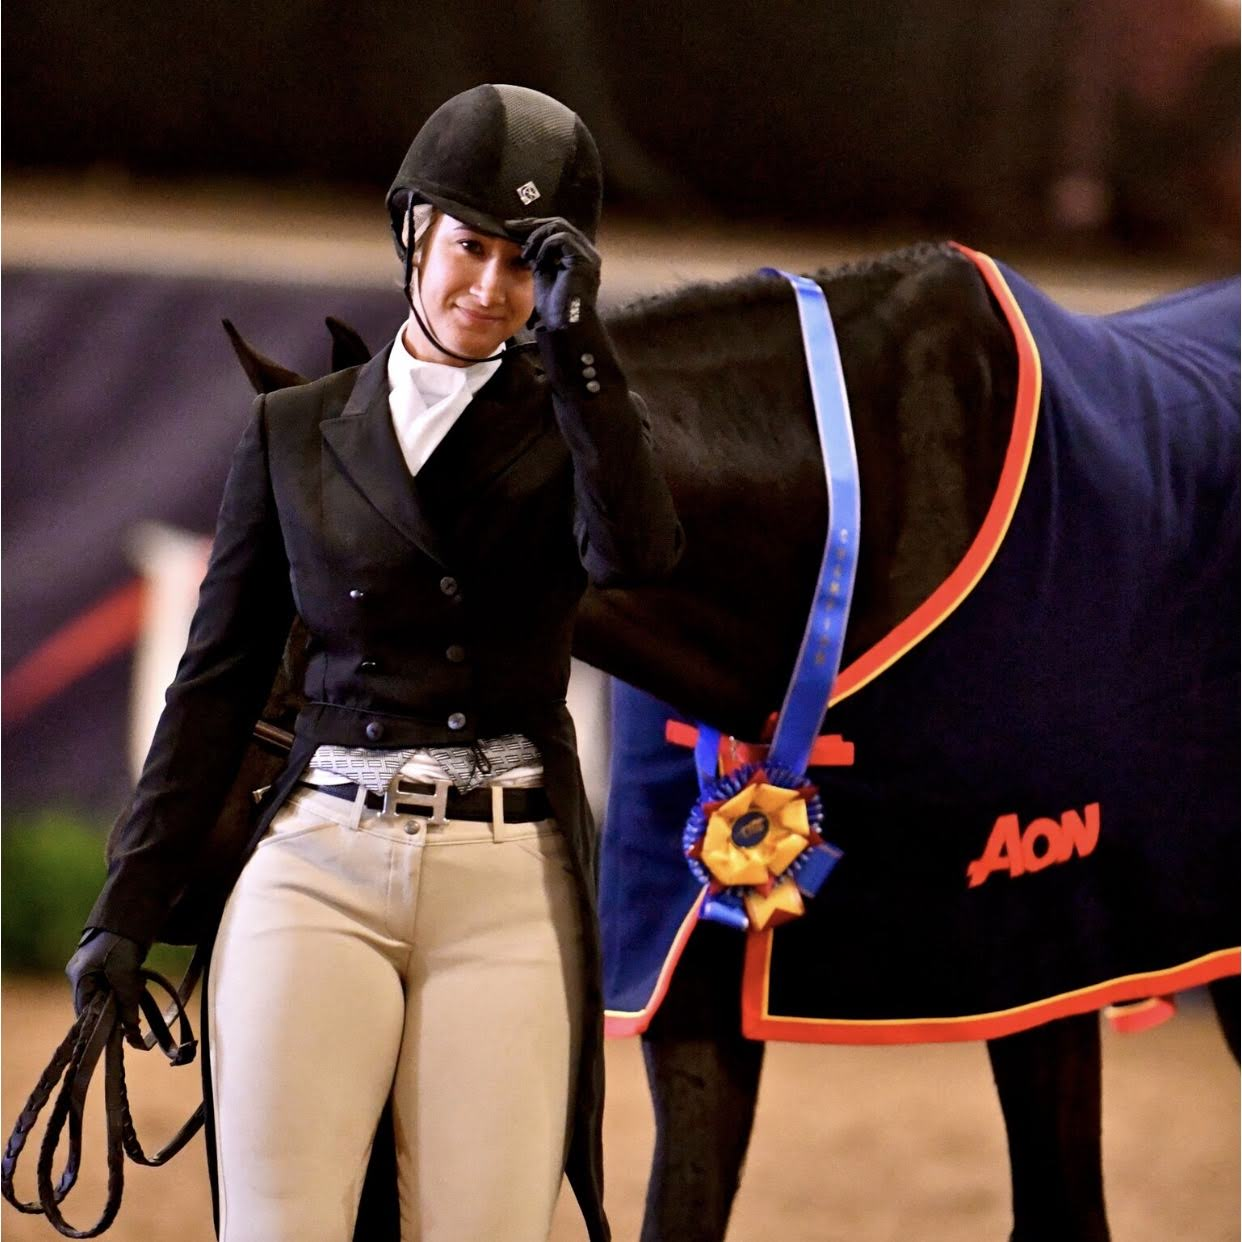 Aon is a proud supporter of events and companies in the equestrian industry. Photo © Alden Corrigan Media.